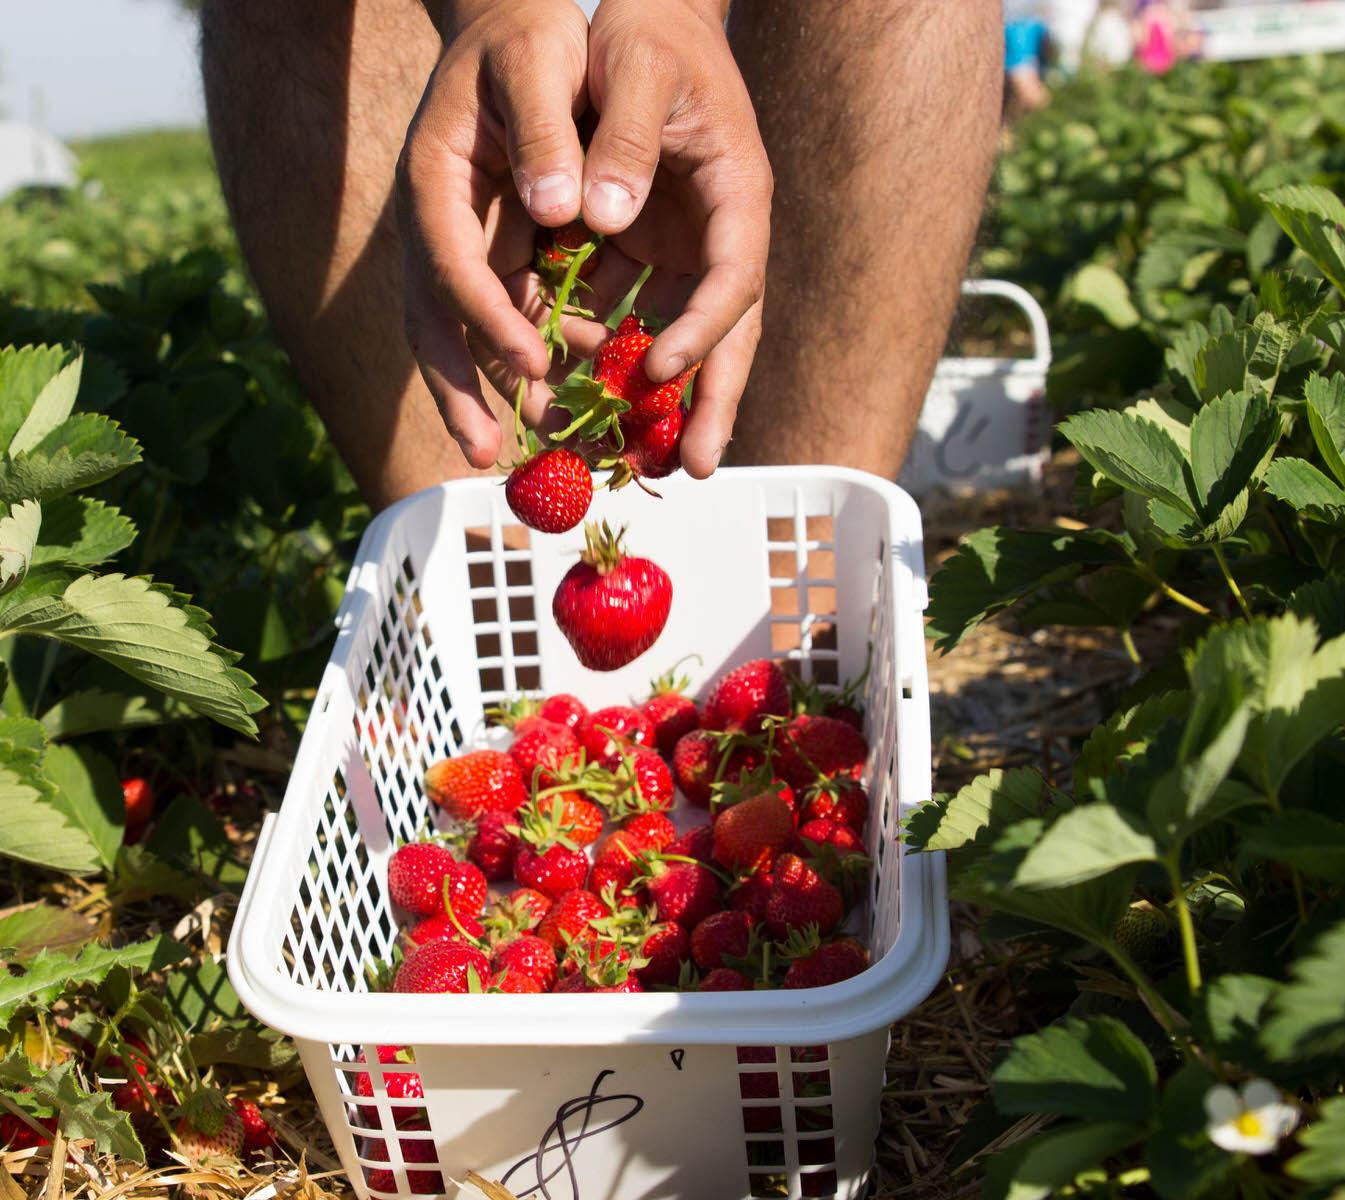 Strawberry Picking06252016_3151-3